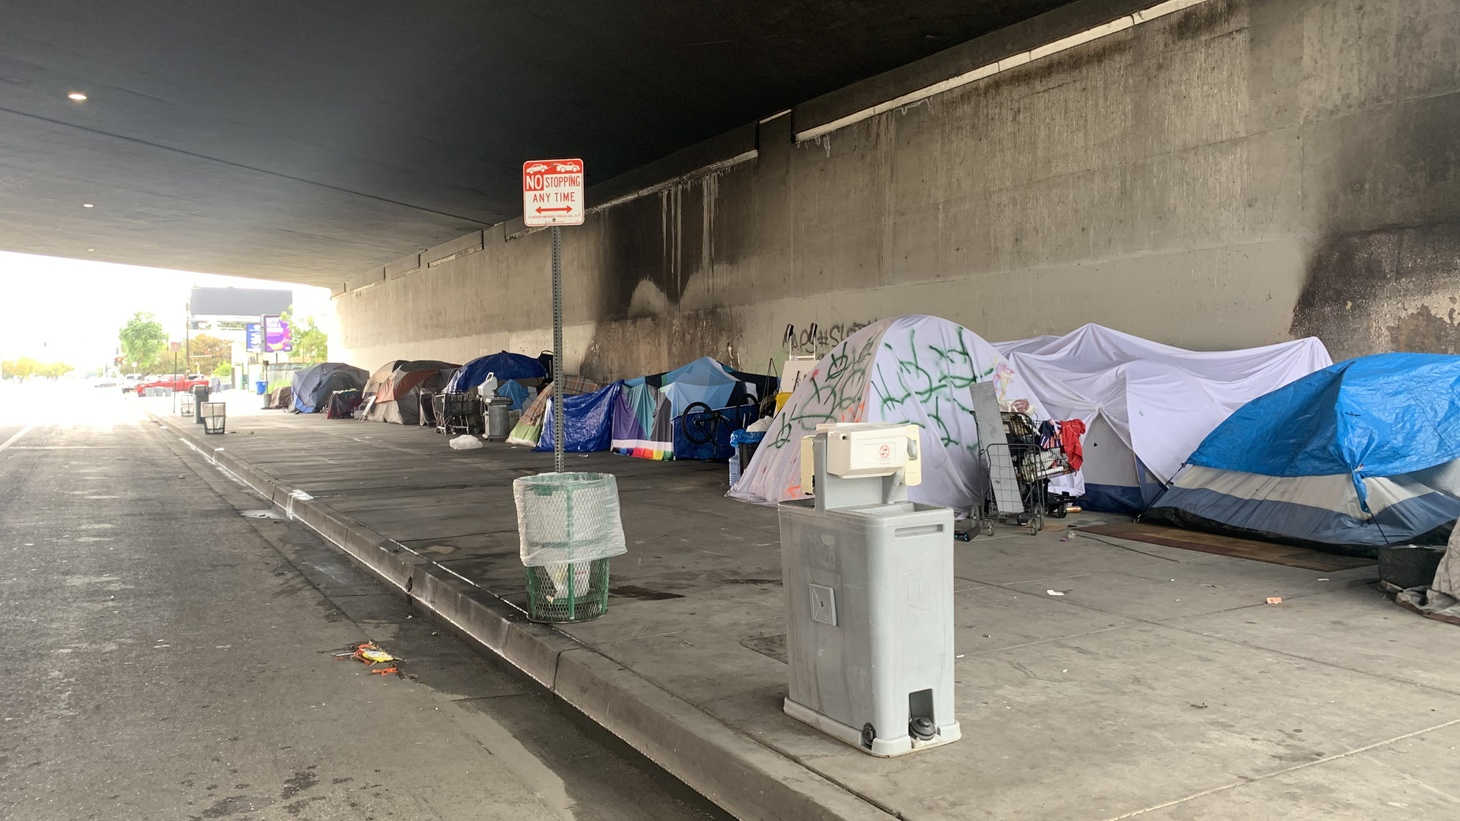 At the beginning of the pandemic, the city deployed hand-washing stations to several large homeless encampments. But maintenance has been spotty.